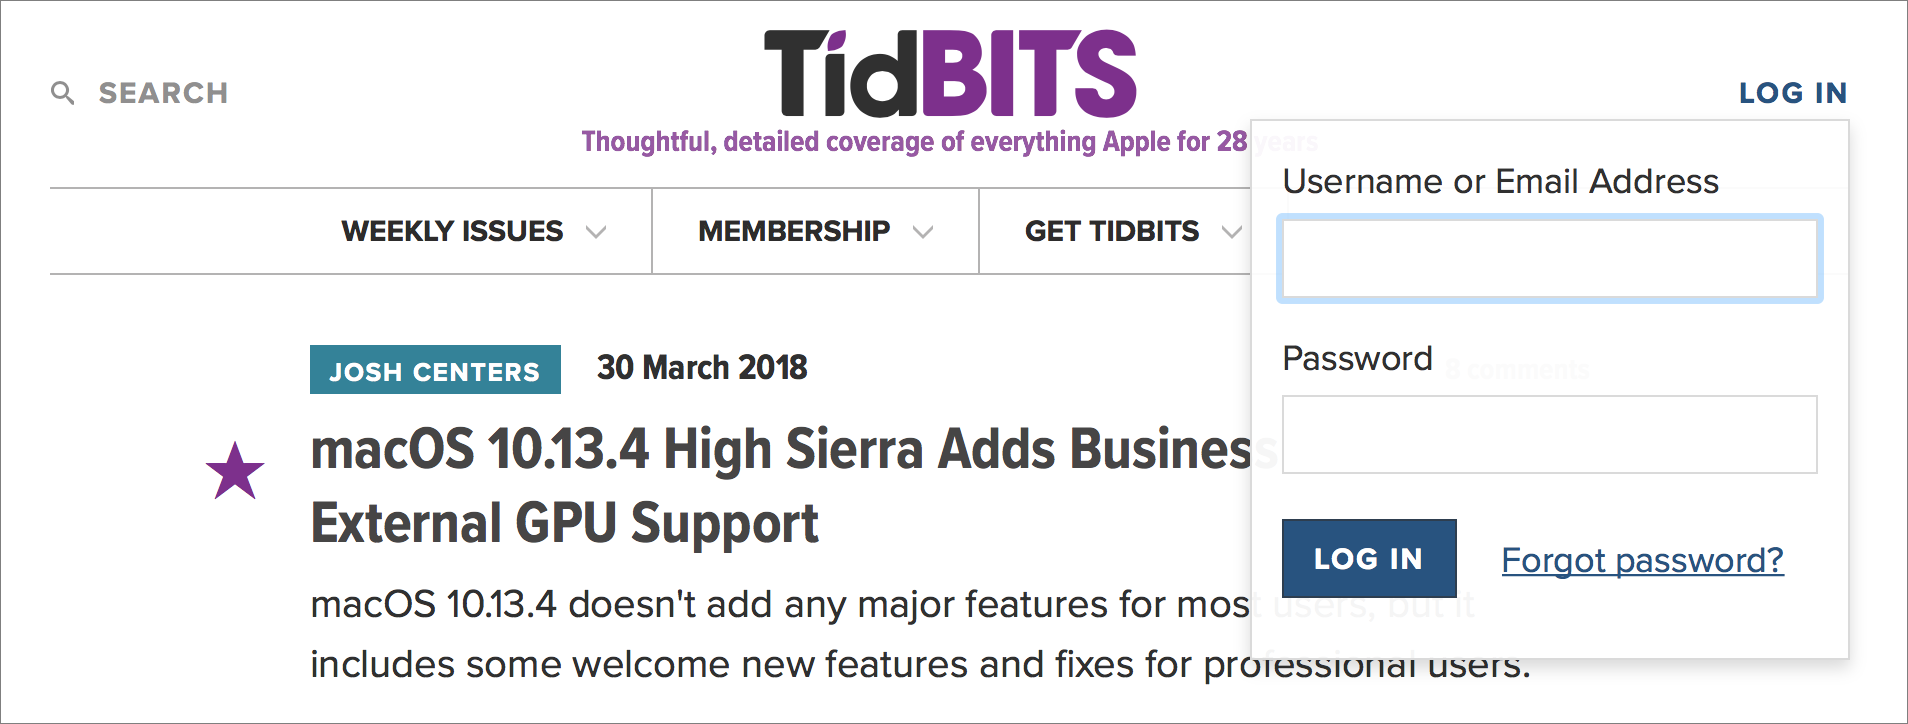 Everything You Need to Know about the TidBITS 2018 Infrastructure